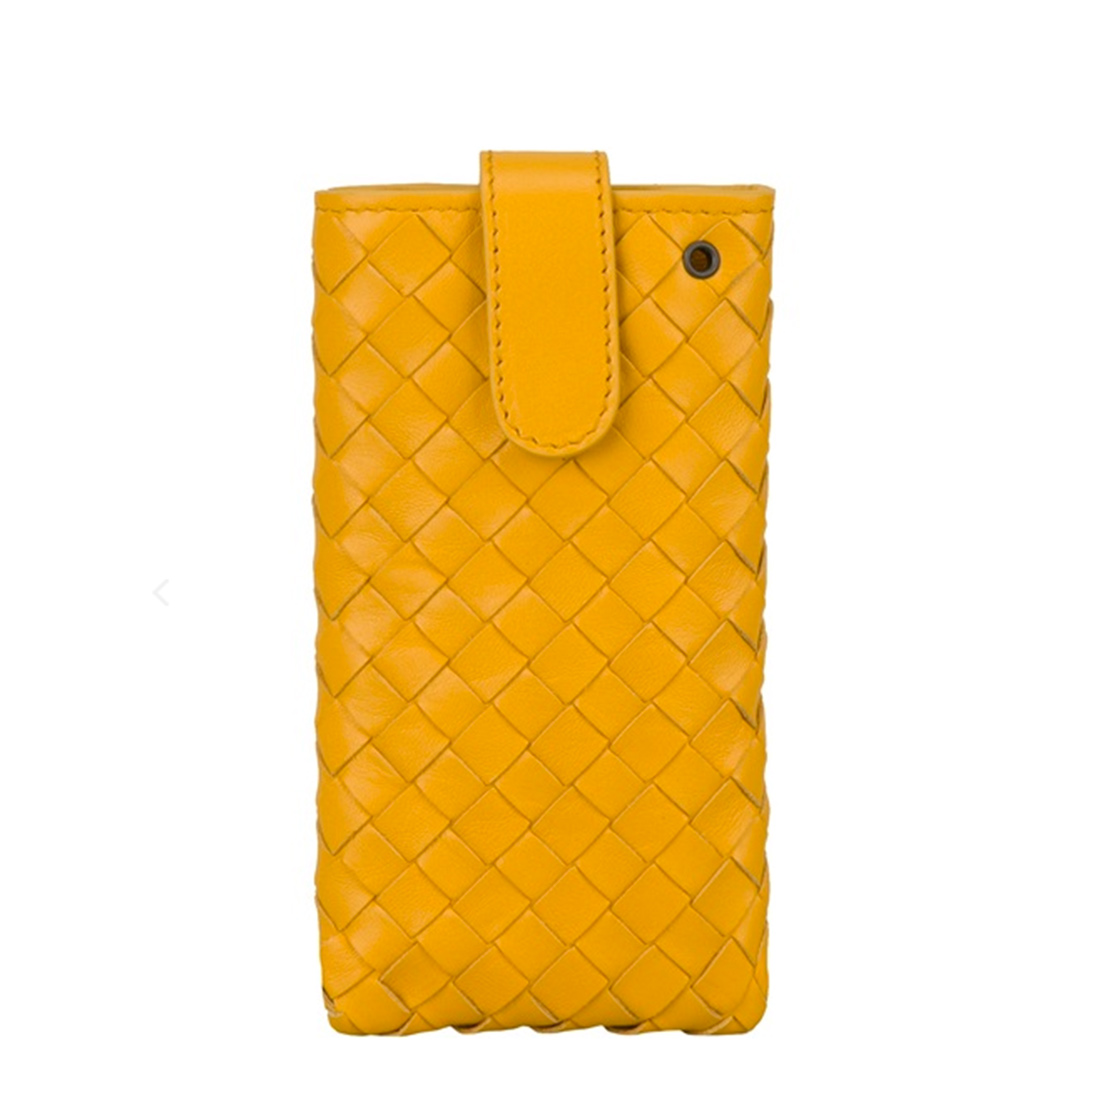 The golden yellow hue of this Bottega Veneta case ($373) is almost as buttery as the leather it's made out of.